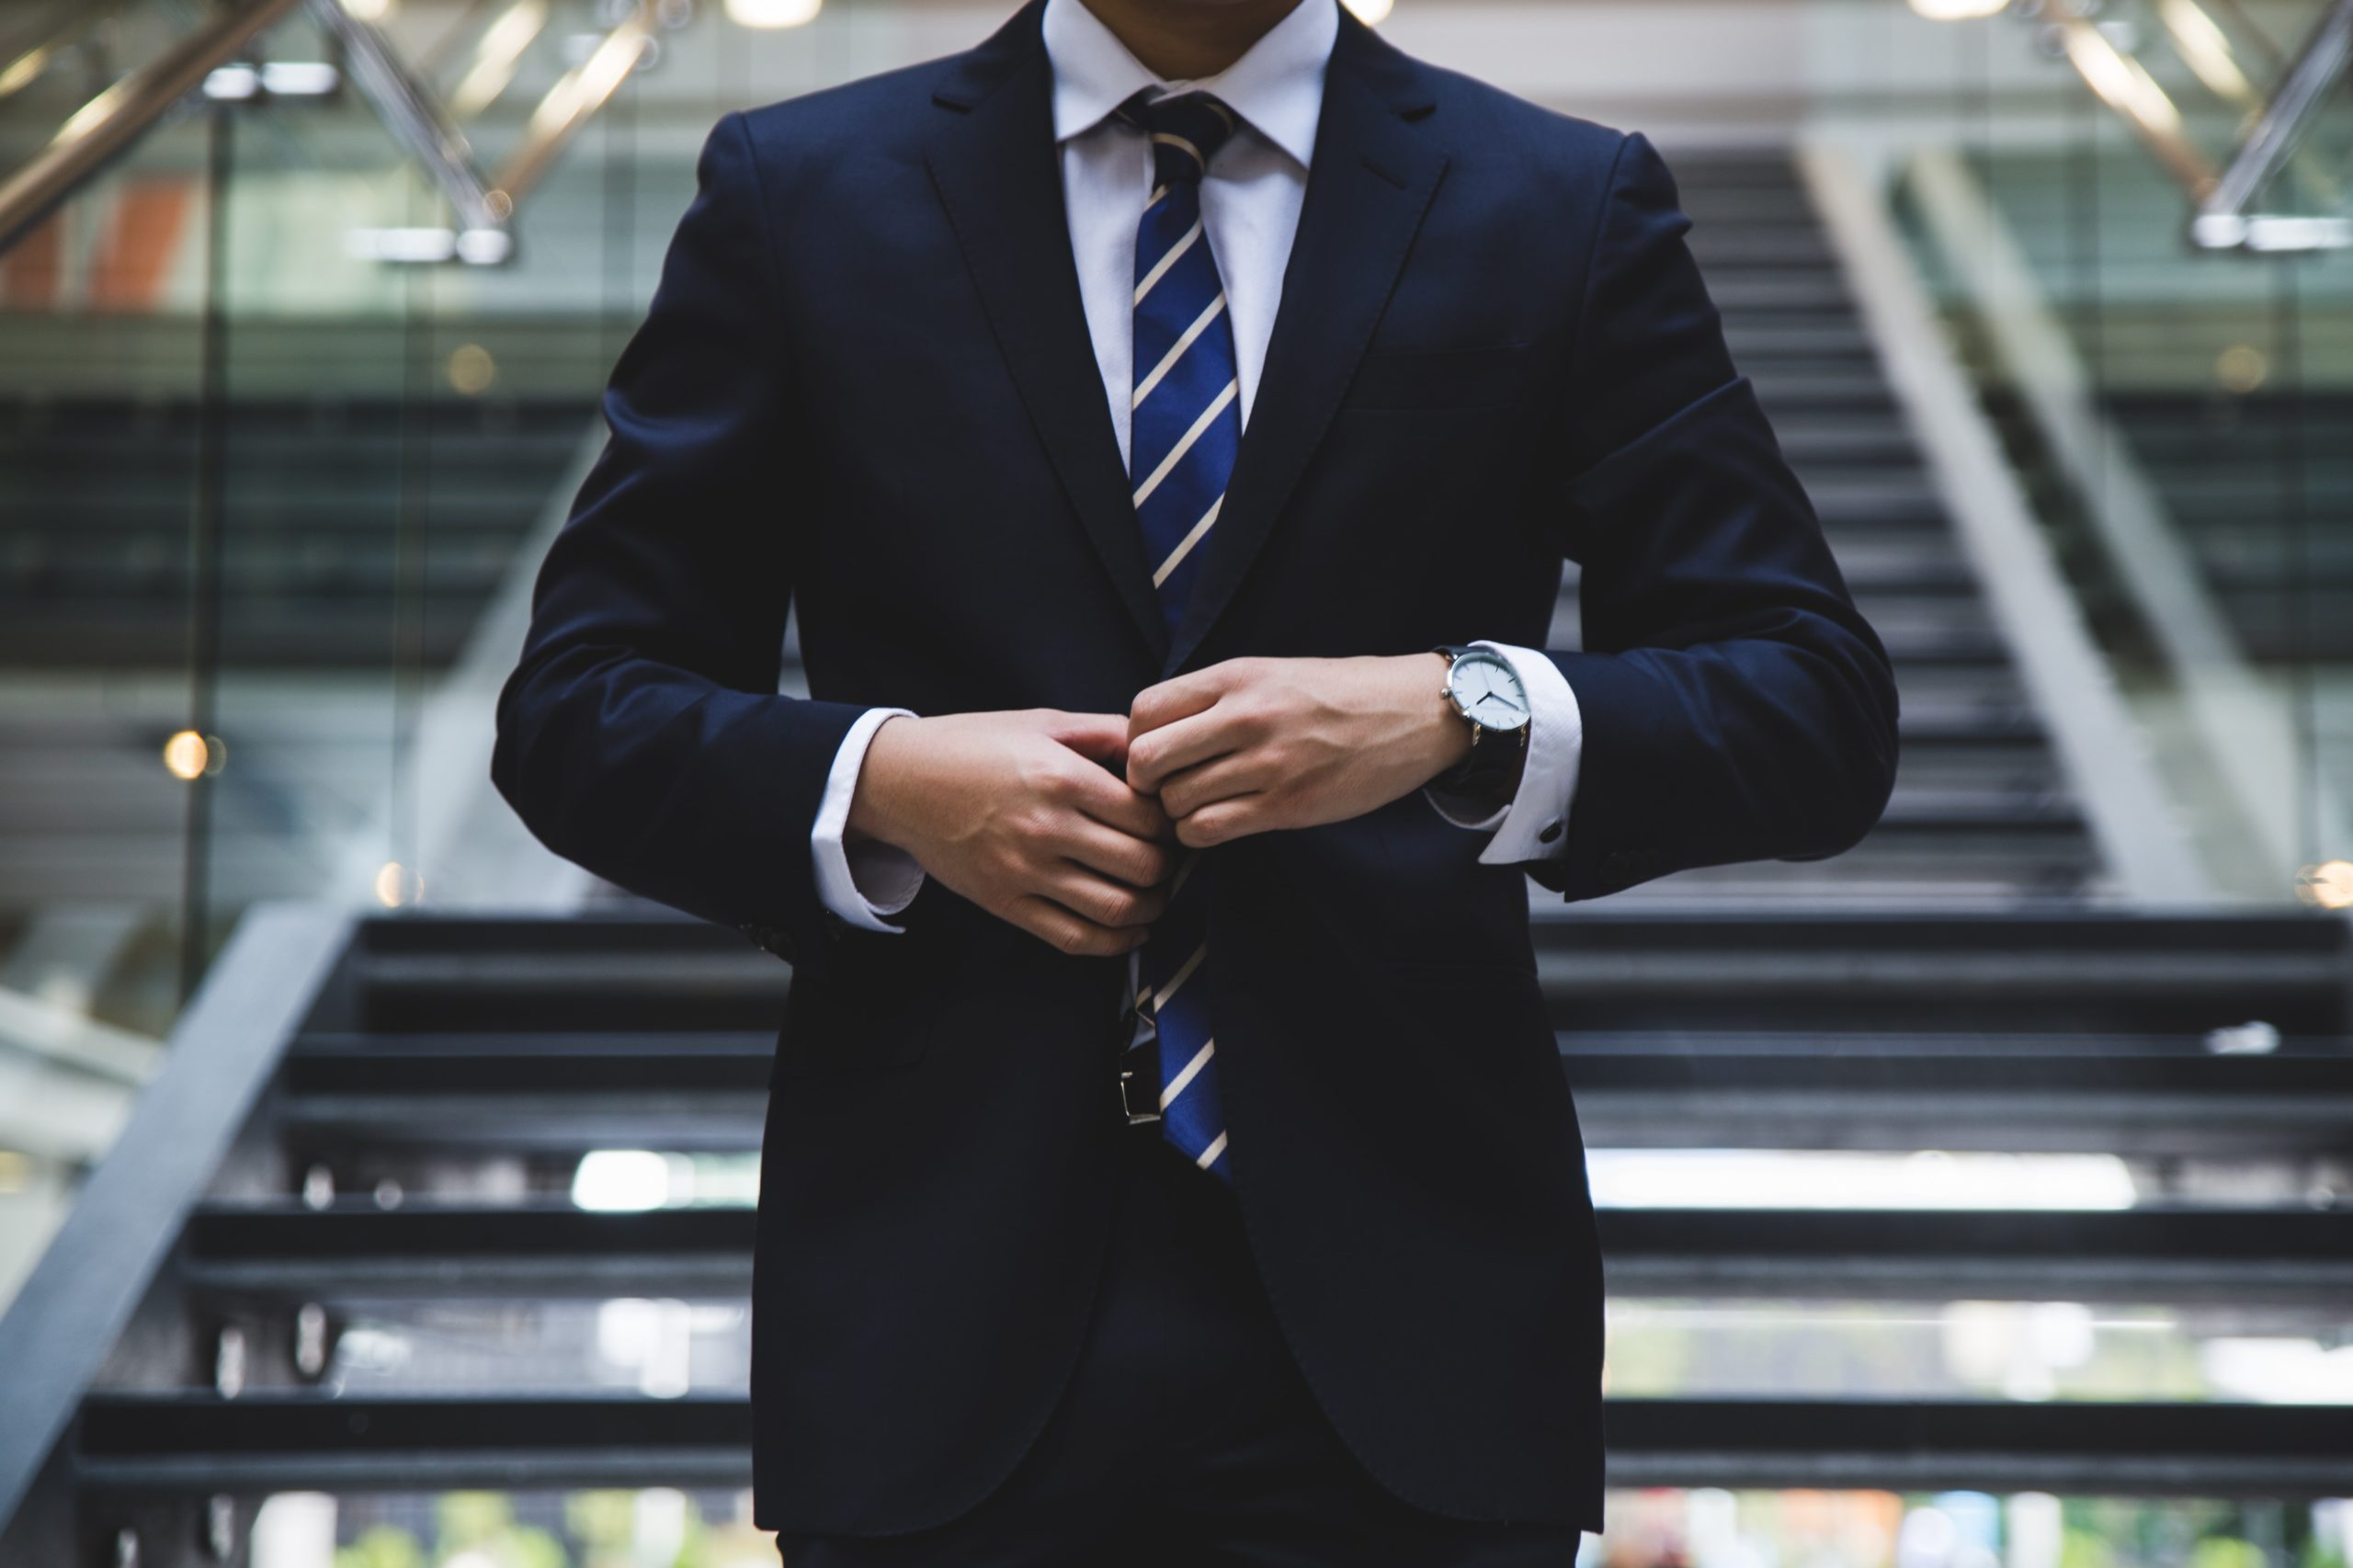 Executive Leadership Podcast #121: Strengthening Your Leadership Mindset with Executive Presence